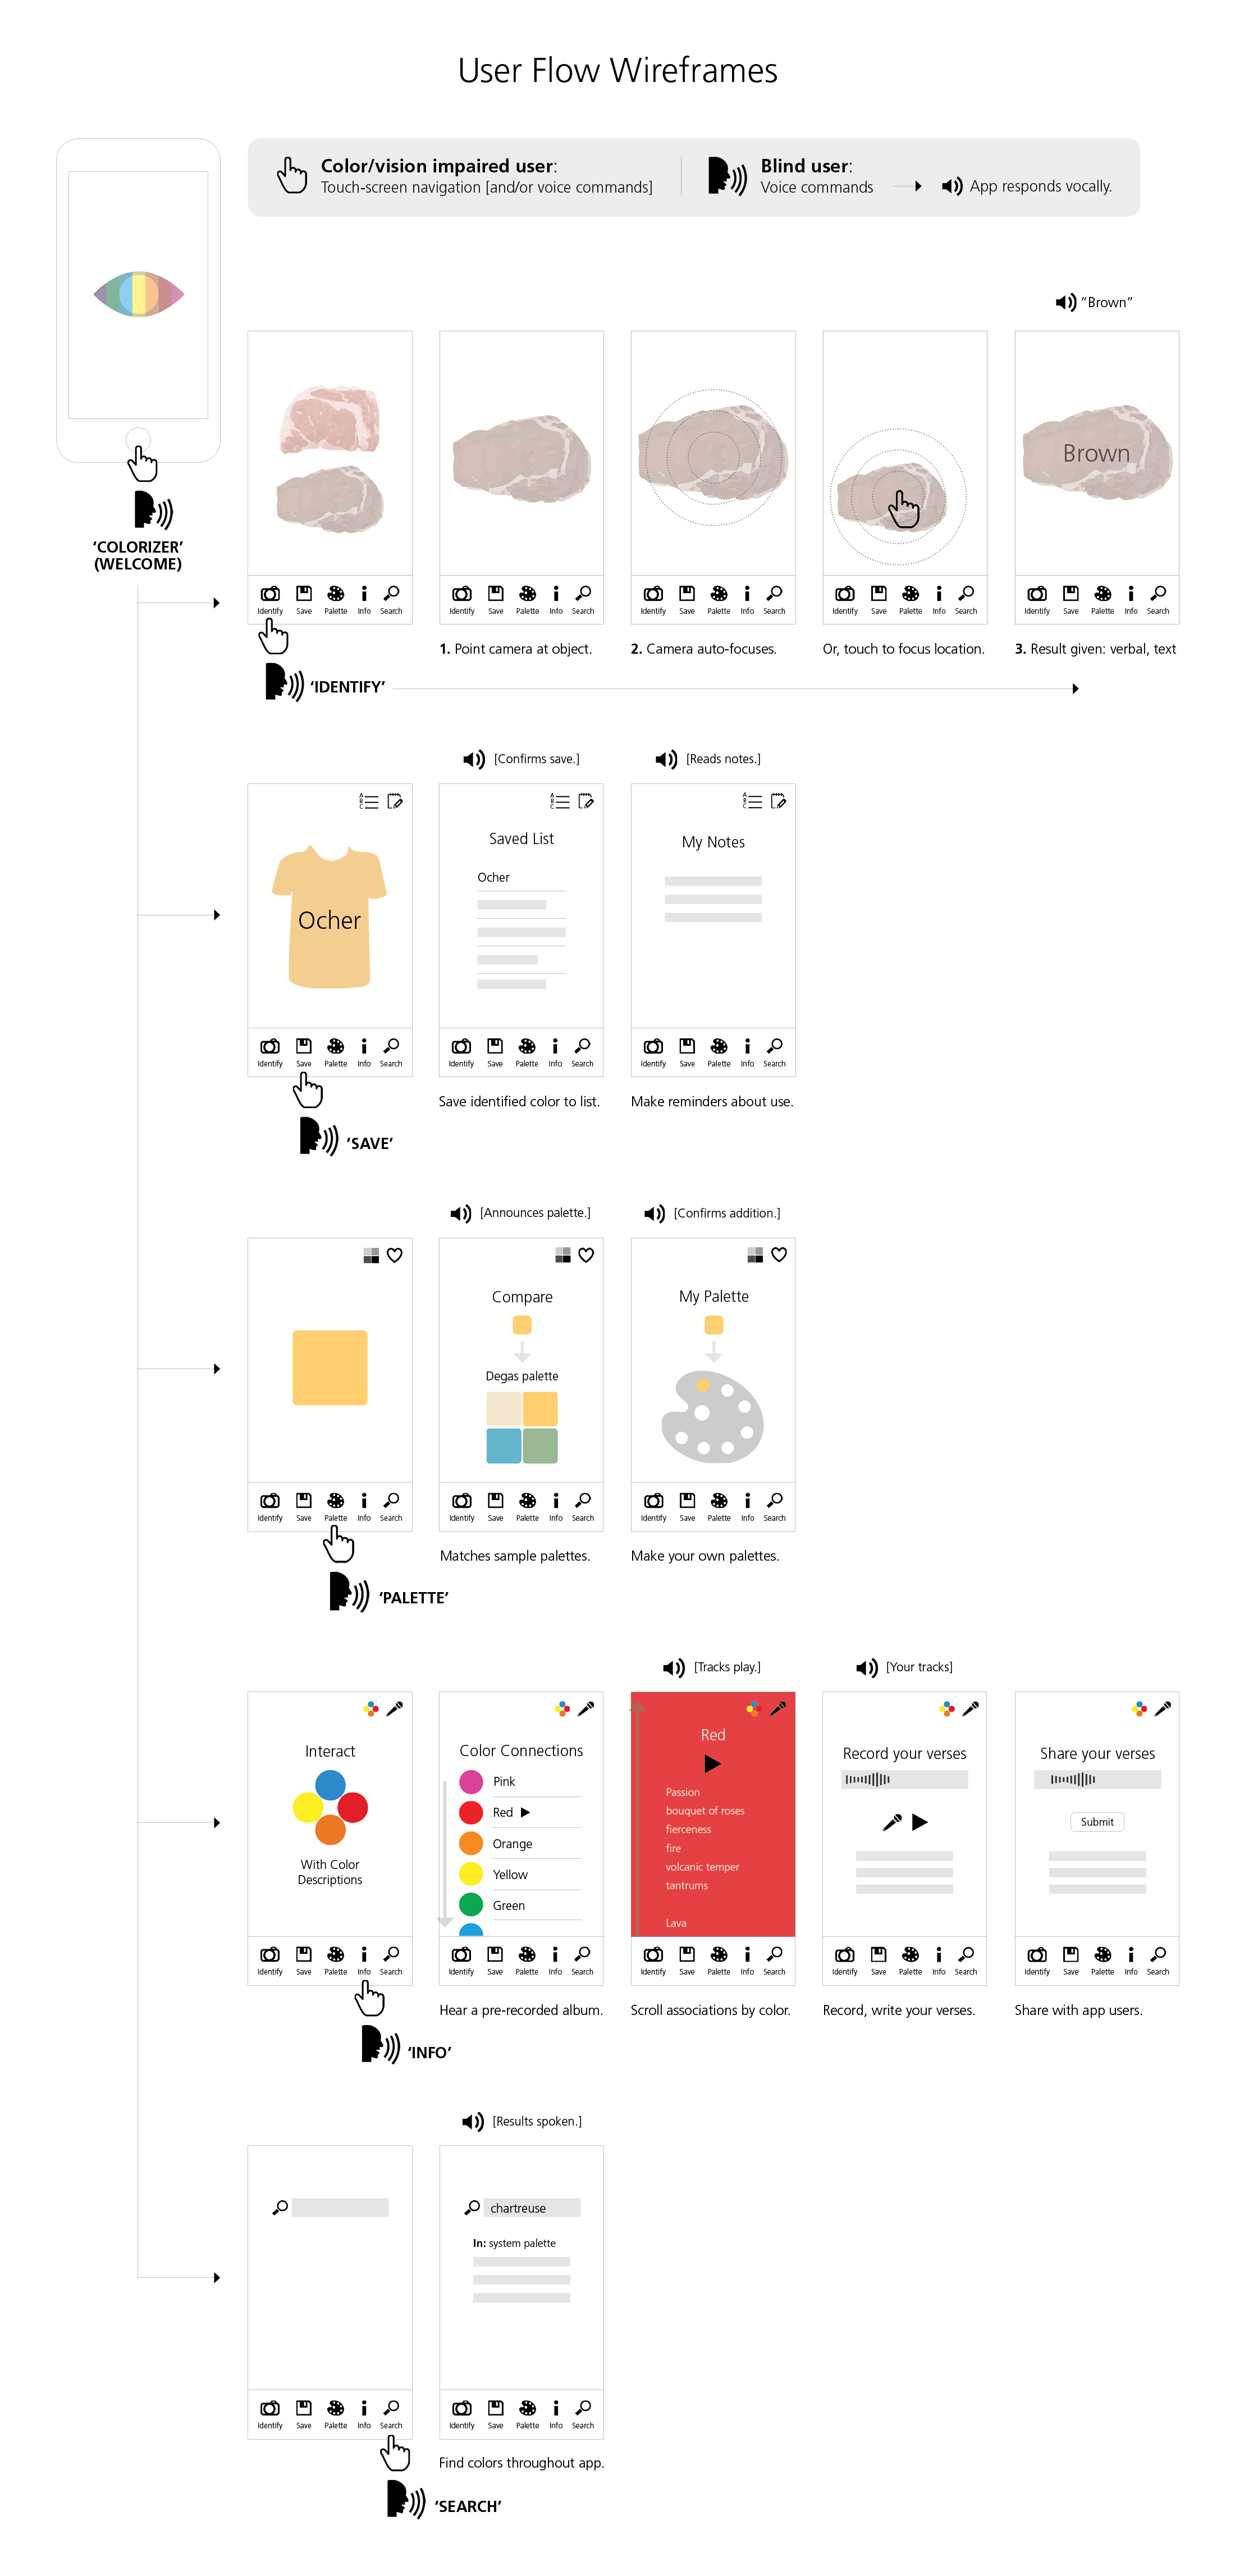 User Flow Wireframes: Blind users can navigate the app by giving voice commands. The app responds by speaking results, recording, and confirming actions. For color/vision impaired users, the interaction can be through touch-screen navigation and/or voice commands.